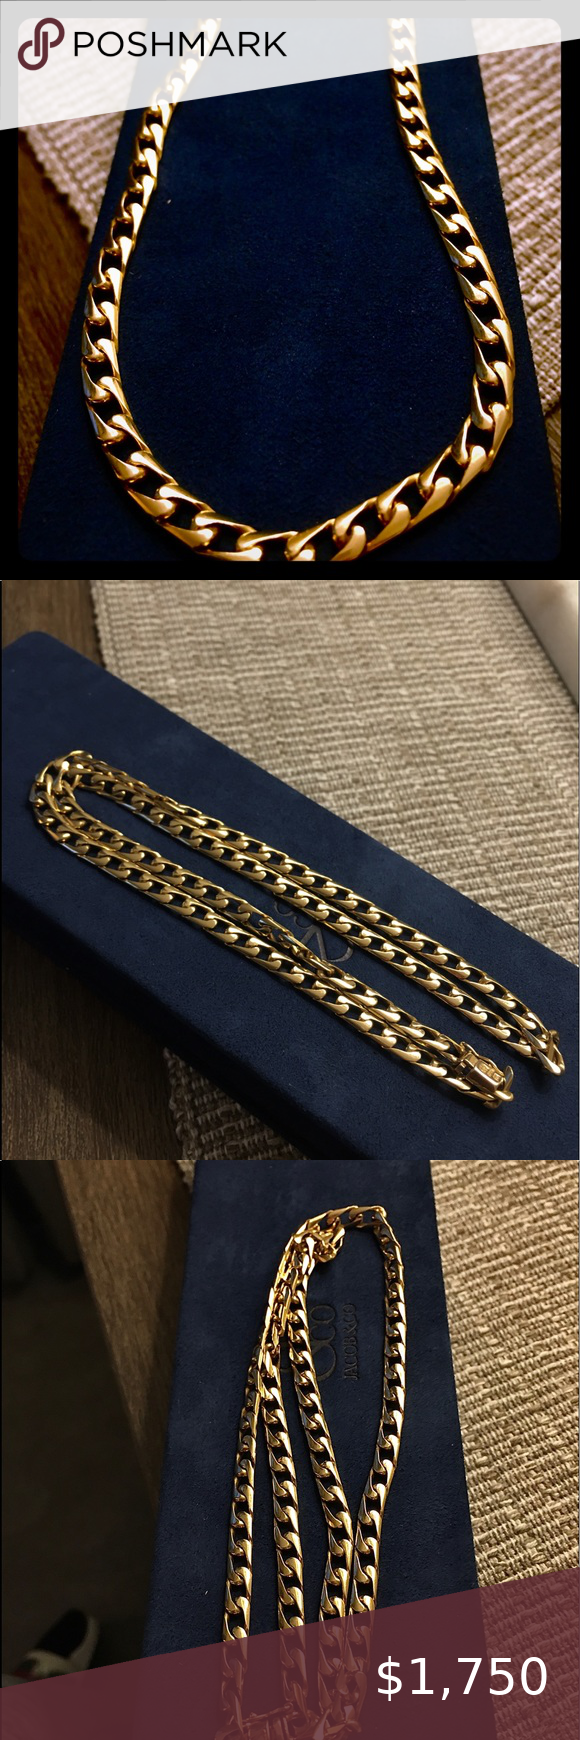 Cuban Link 14k Yellow Gold Heavy 22 Inches Long Total Weight Of The Chain Is 40 8 Grams Of Solid 14k Gold Mint Co In 2020 Gold Mens Accessories Jewelry 14k Yellow Gold